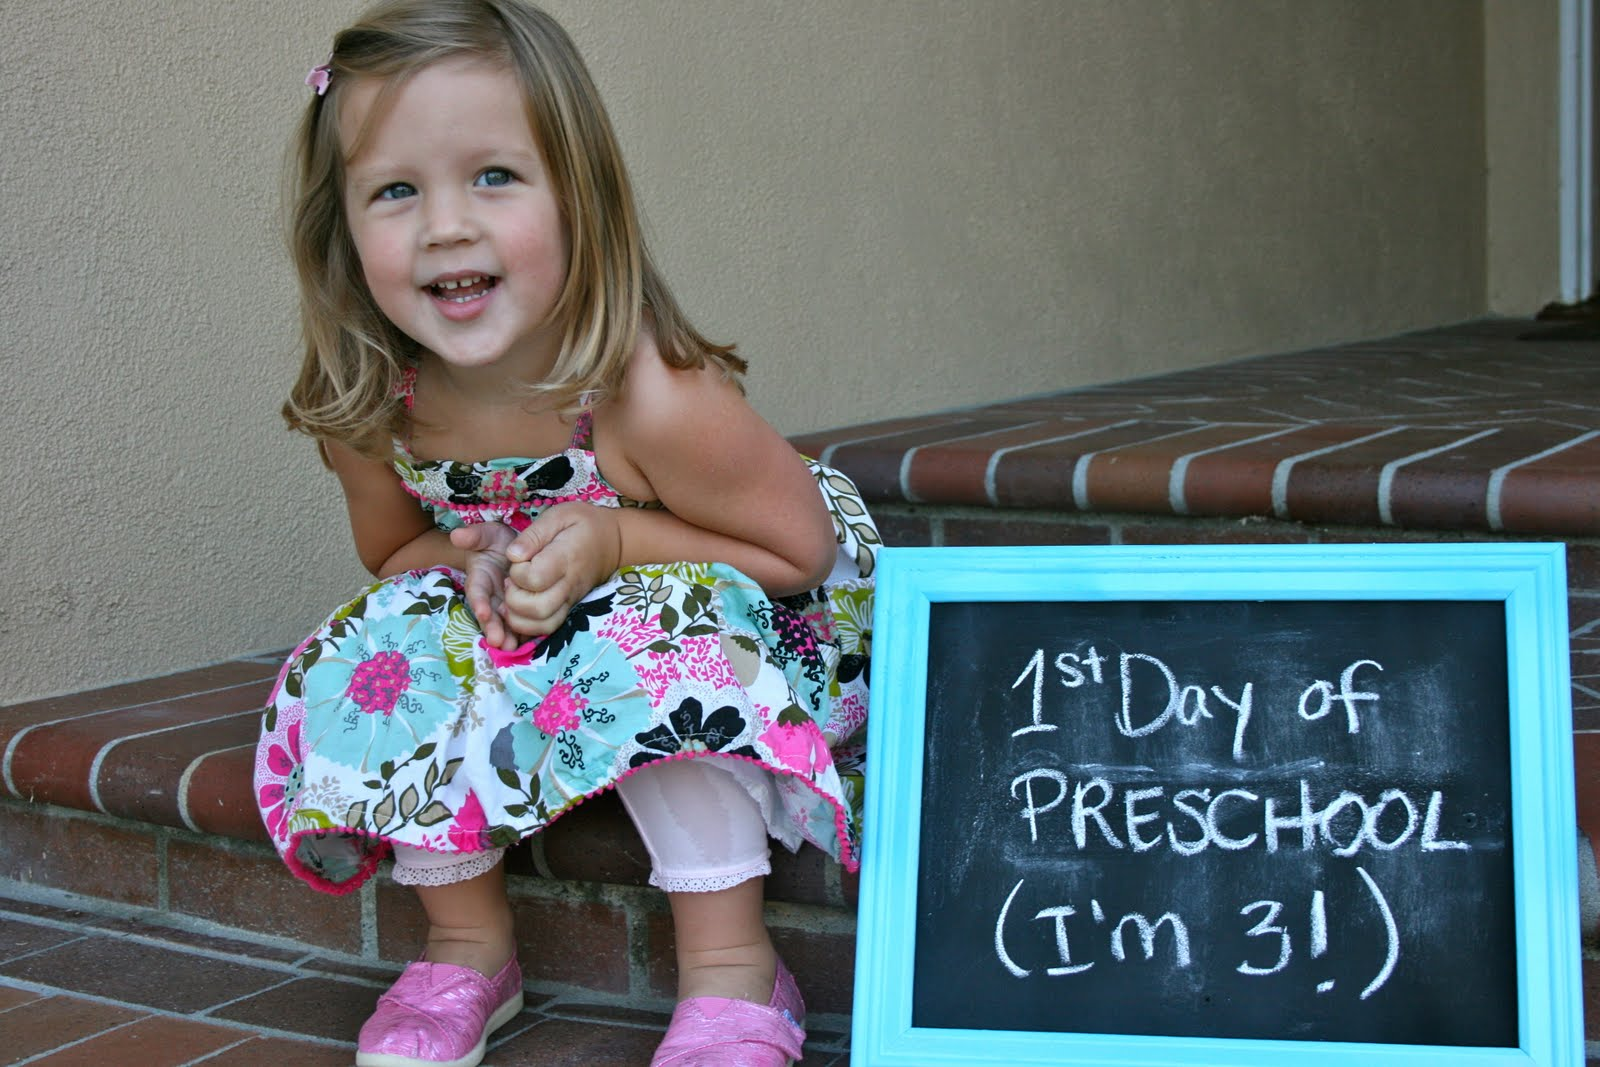 First Day Of Preschool Sign http://ragstostitchesblog.com/first-day-of-preschool/